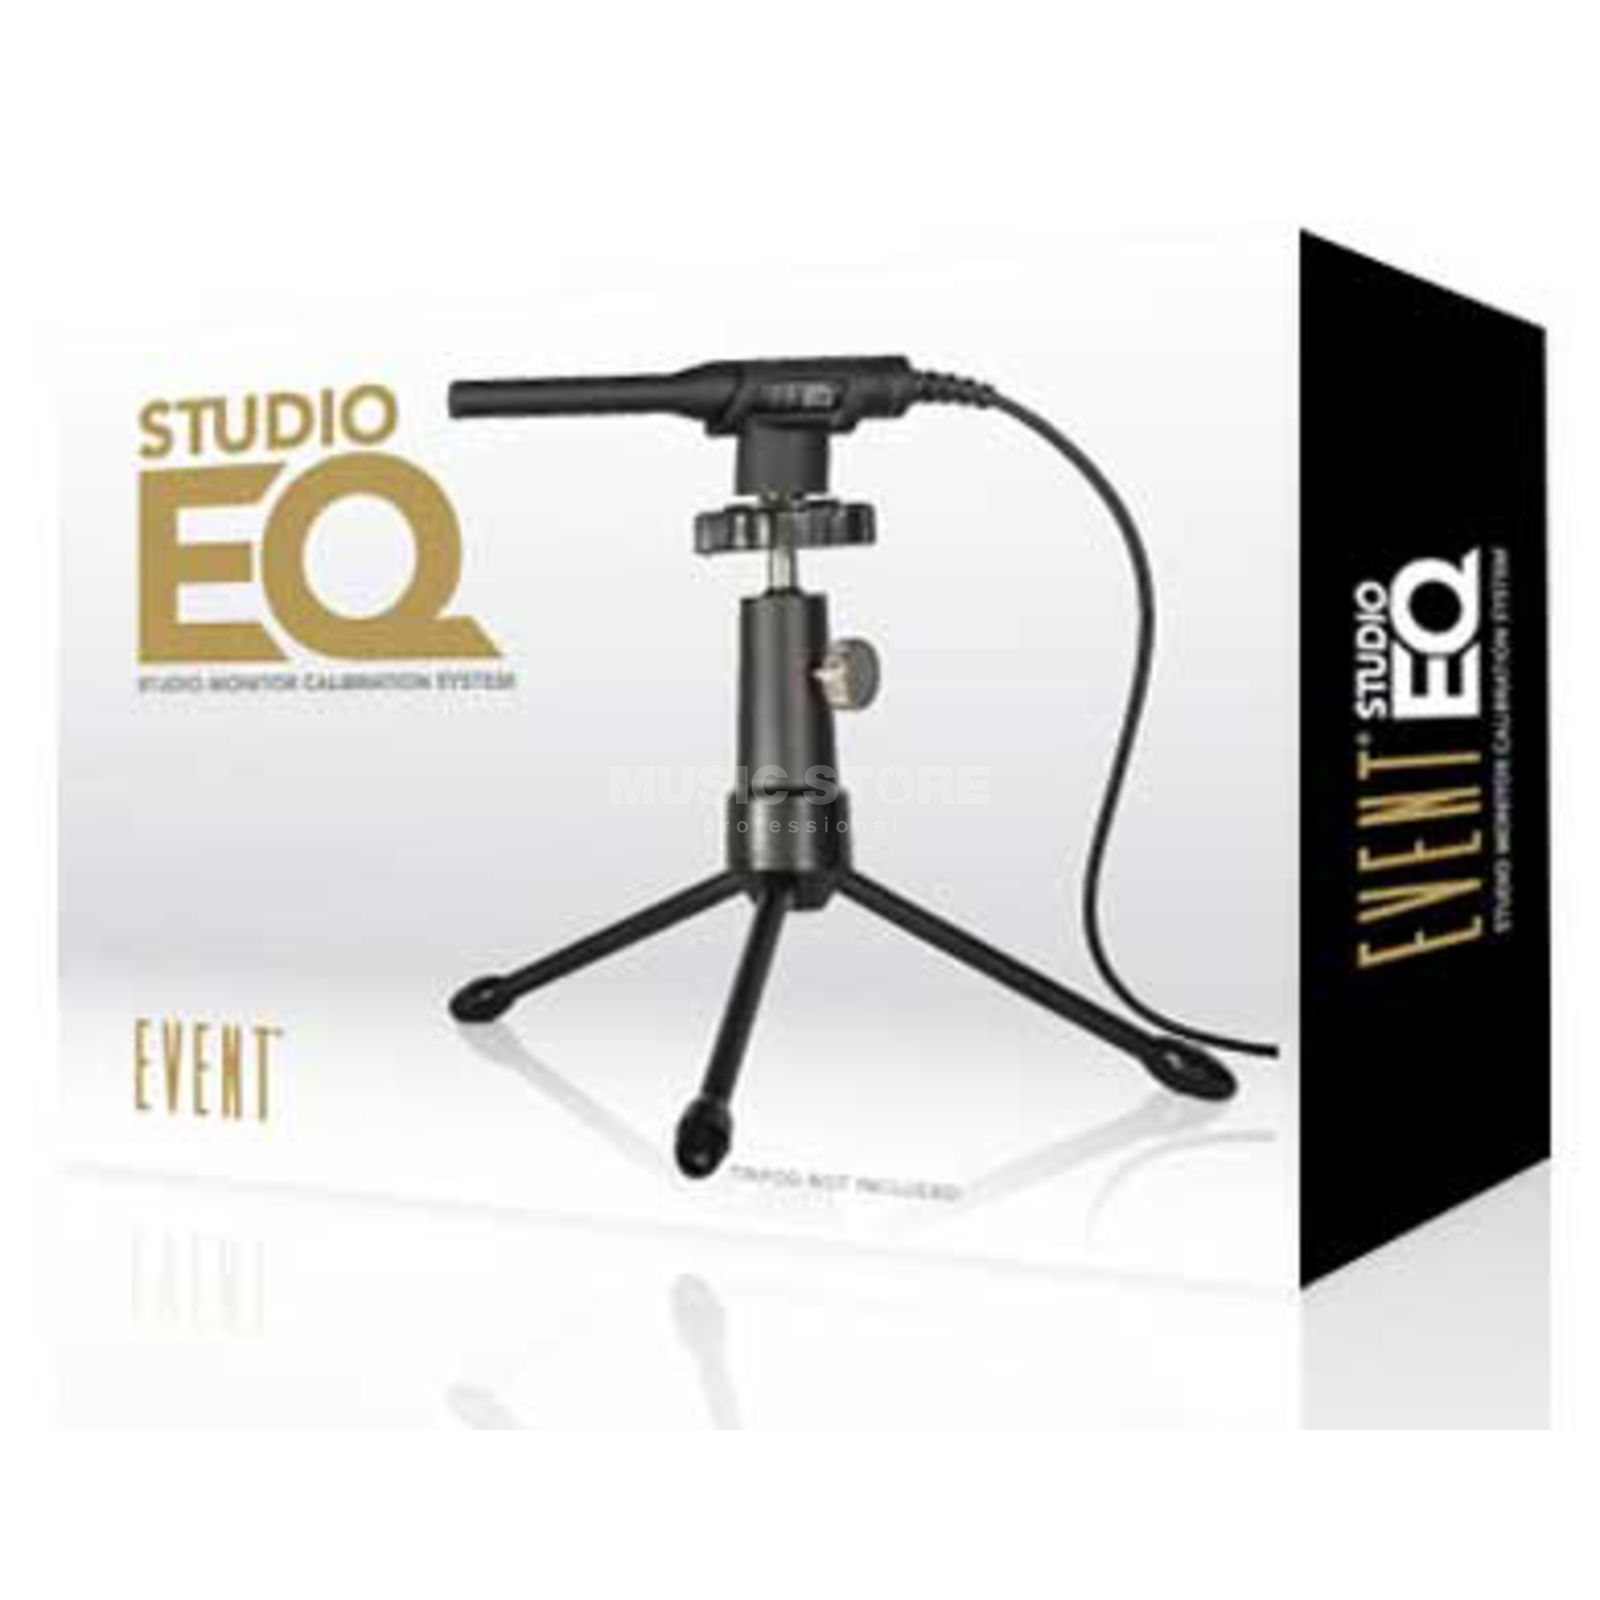 Event Electronics Studio EQ PACK Messmikro Set inkl. USB-Stick und Kabel Produktbild